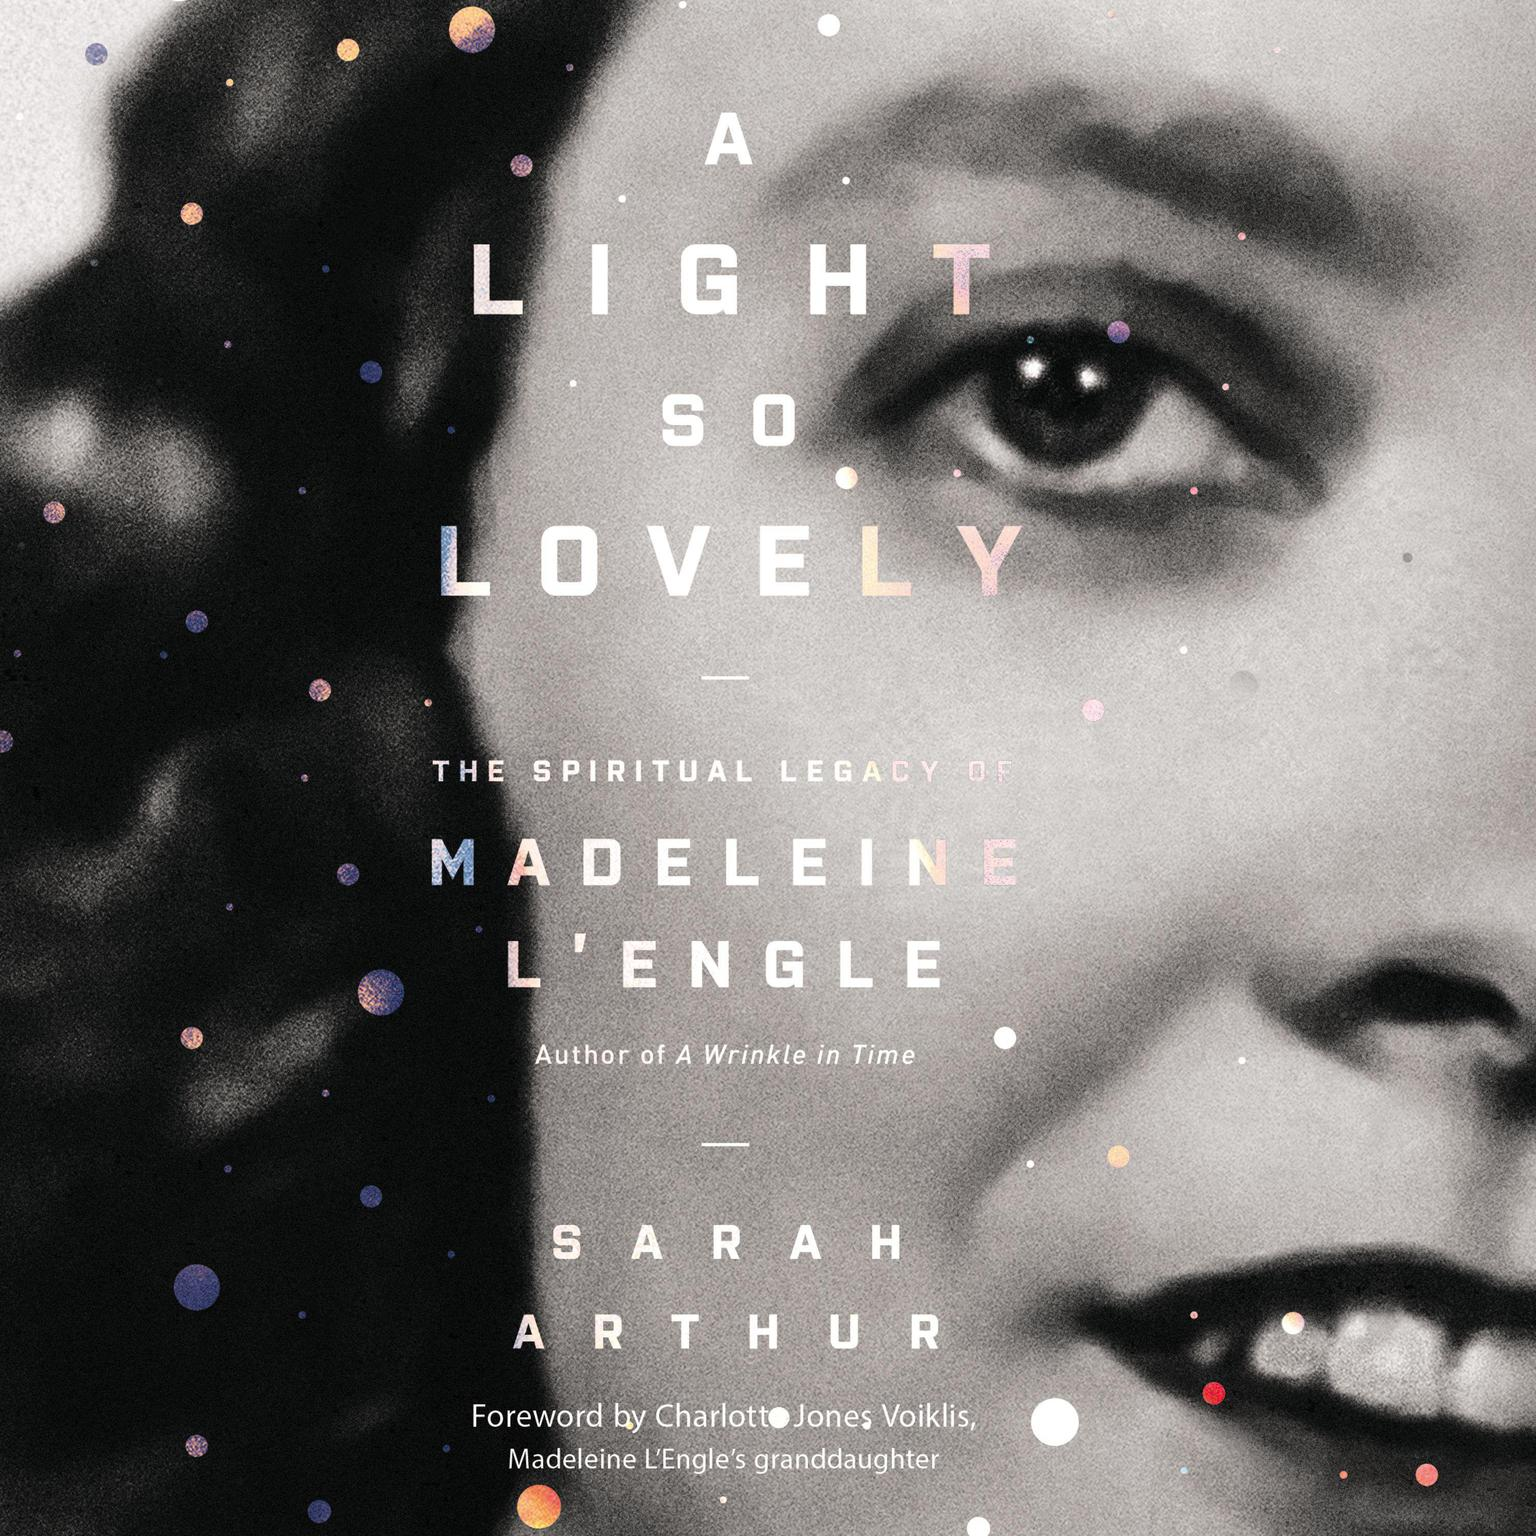 Printable A Light So Lovely: The Spiritual Legacy of Madeleine L'Engle, Author of A Wrinkle in Time Audiobook Cover Art